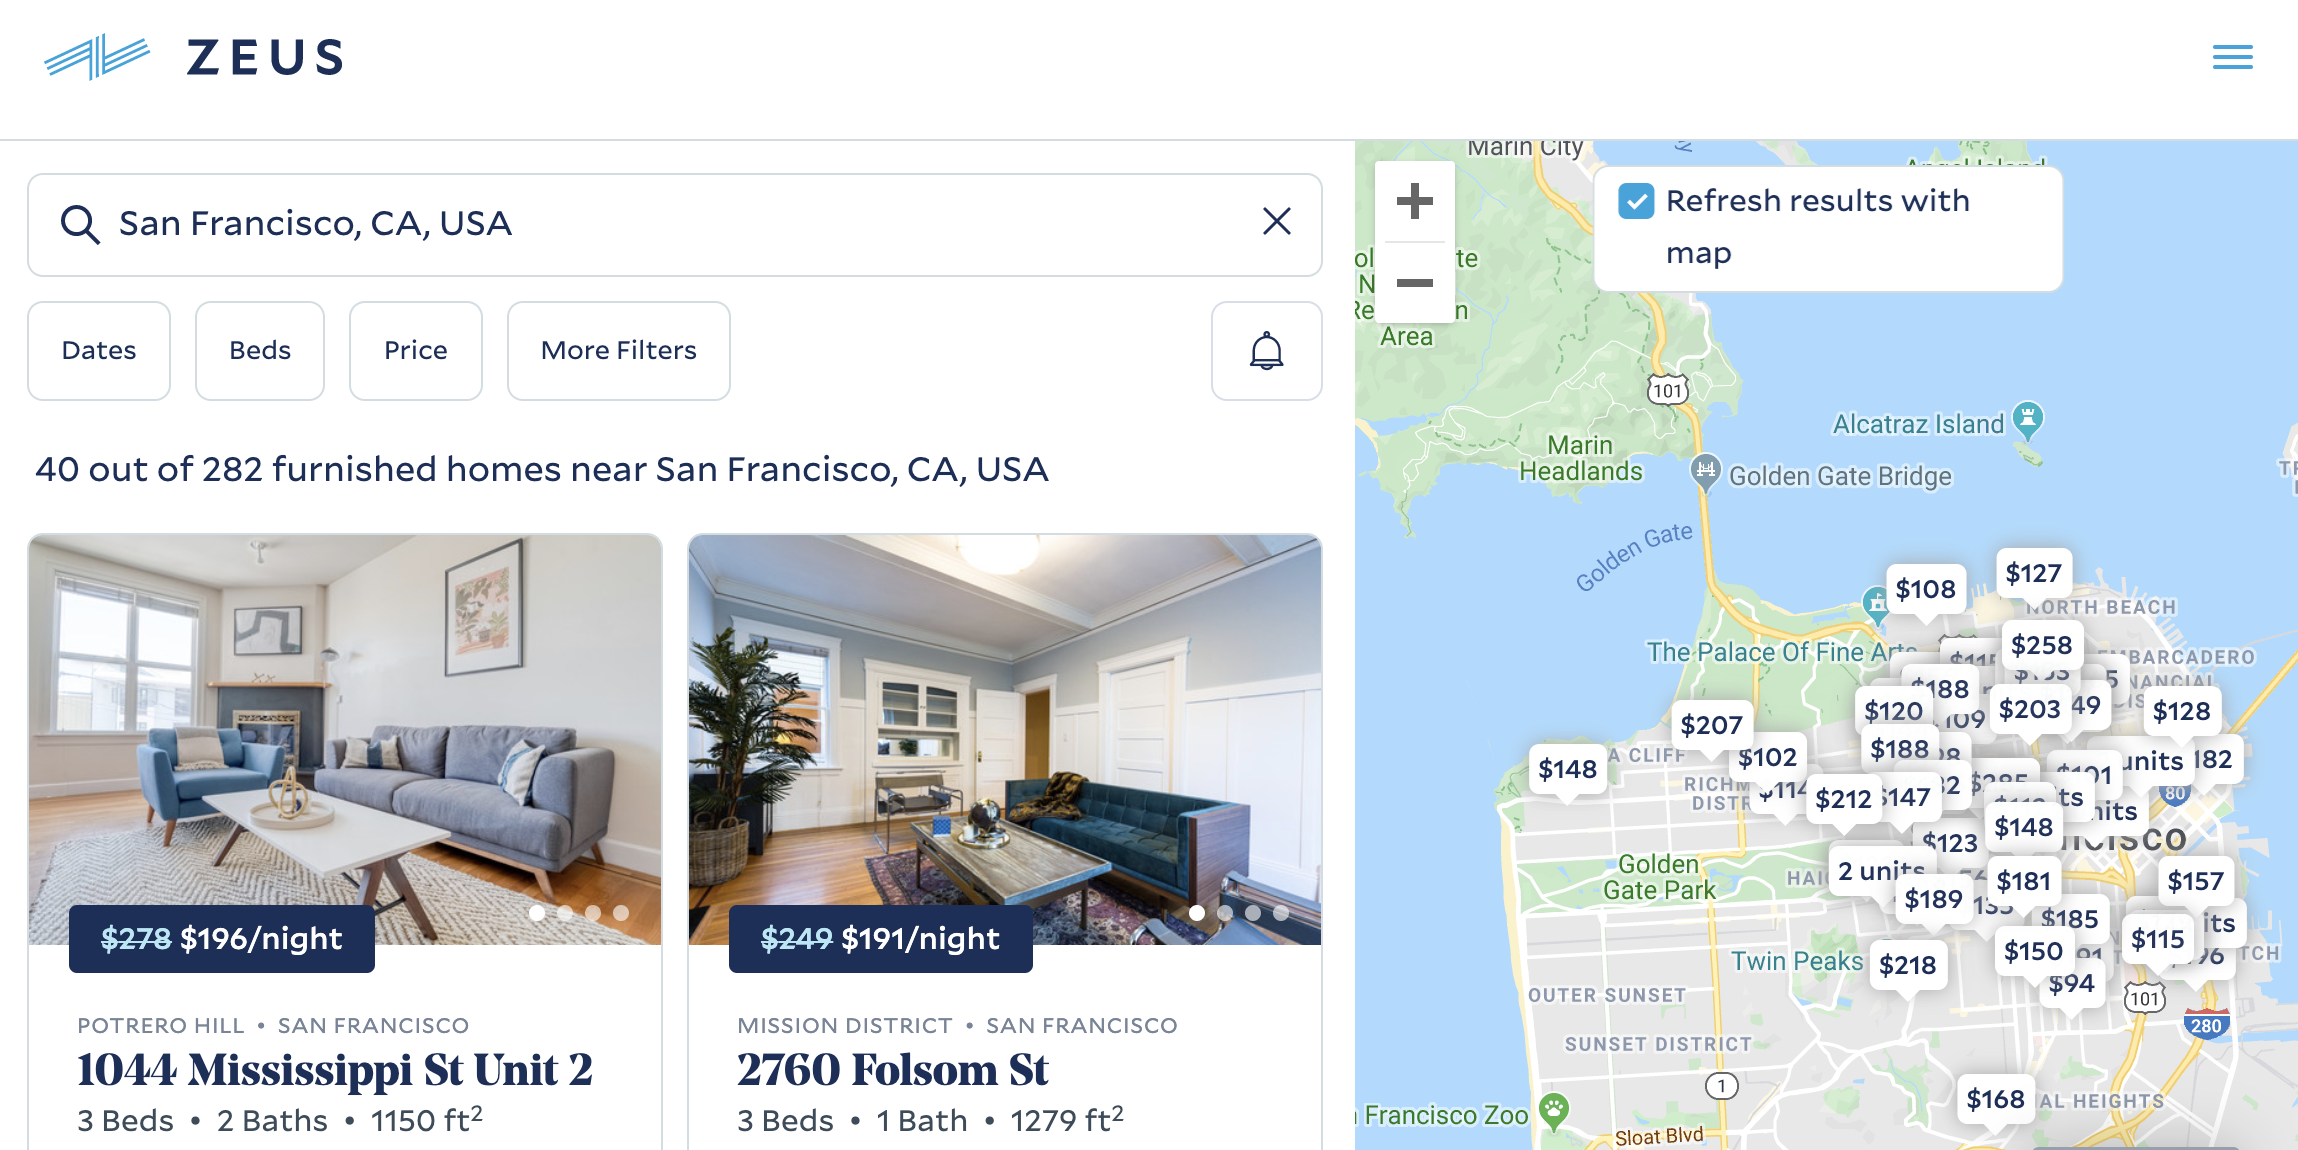 Airbnb invests as Zeus corporate housing raises $55M at $205M